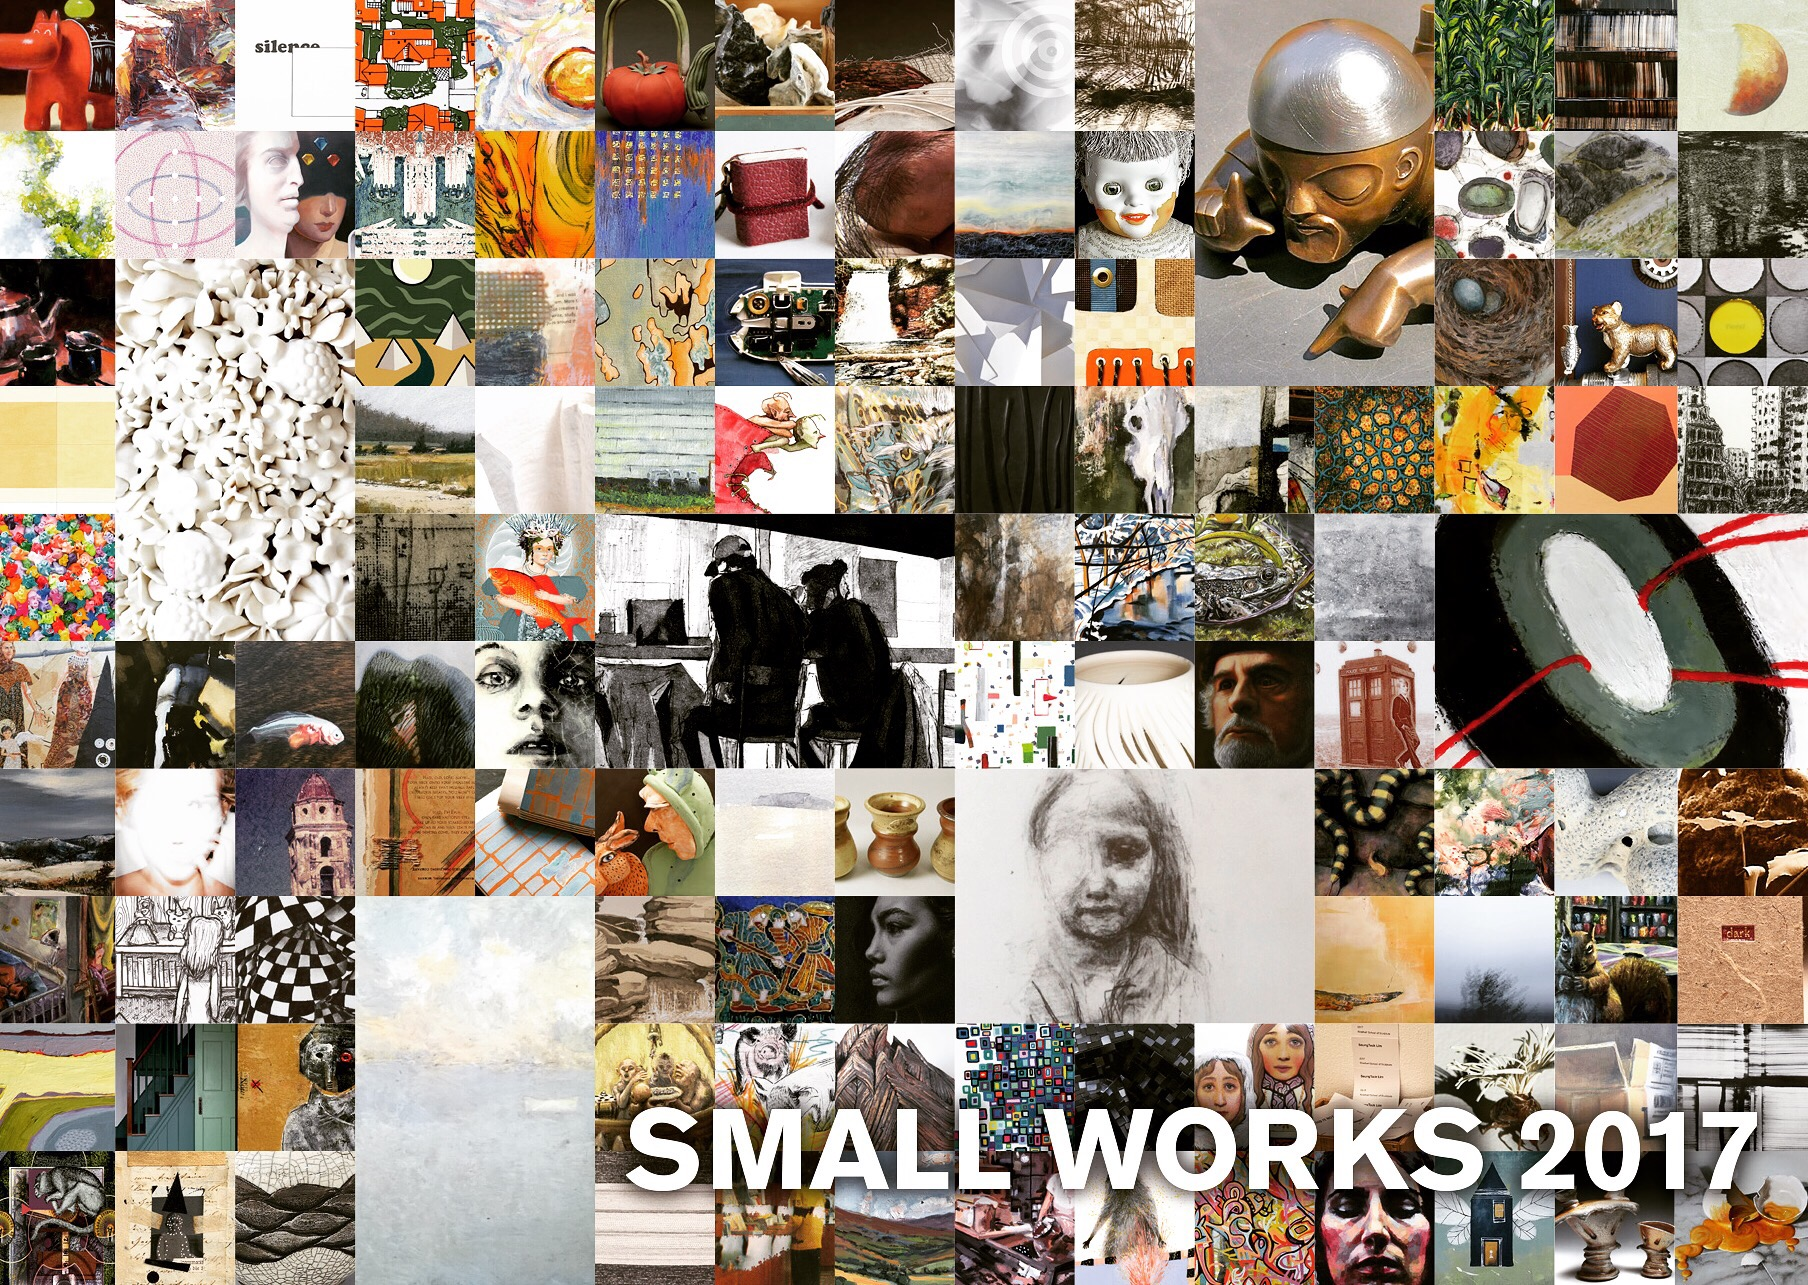 Small Works 2017